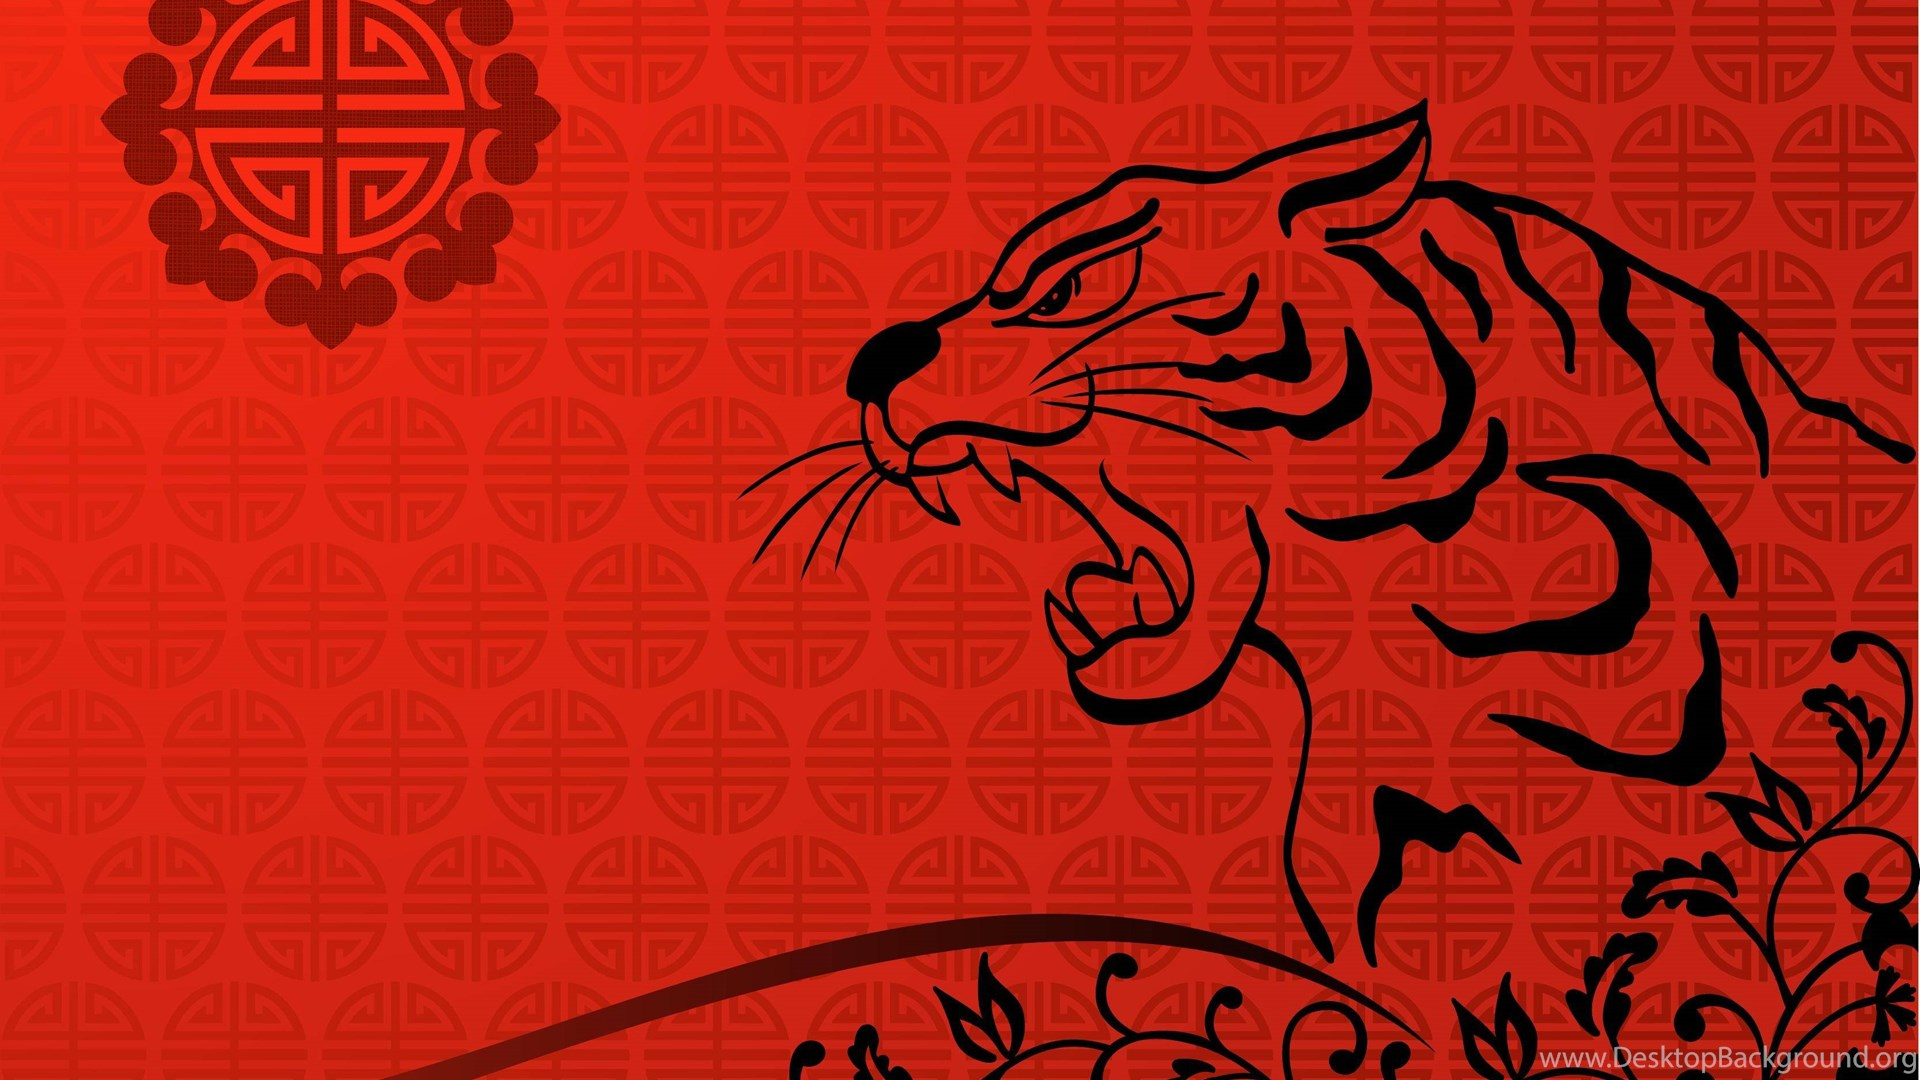 Chinese New Year Dragons Wallpapers HD Happy Republic Day Images